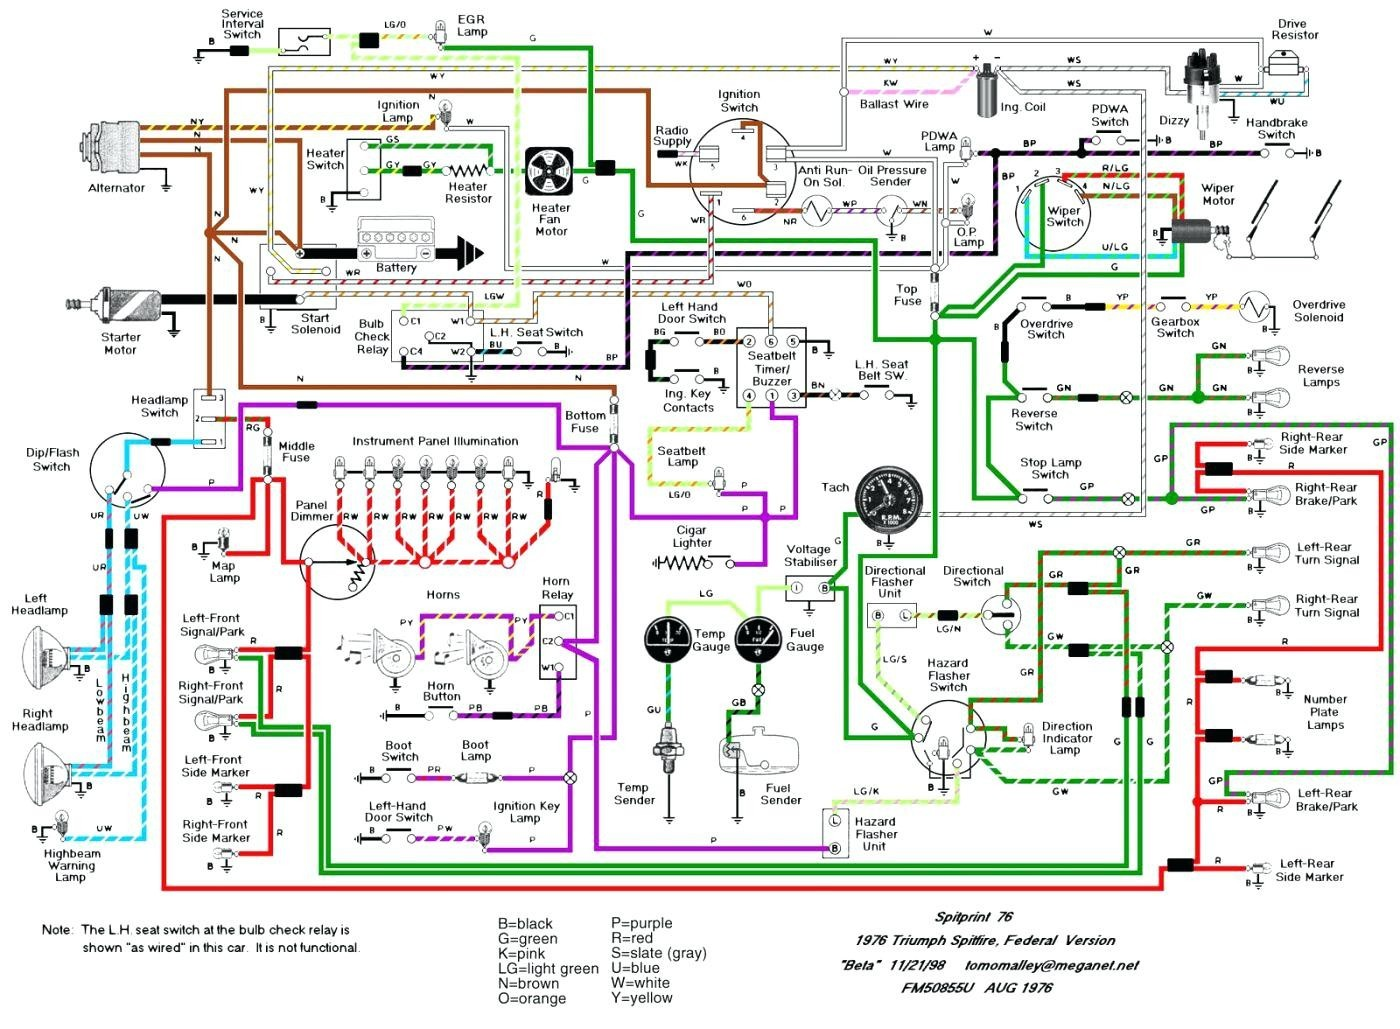 Yamaha R6 Wiring Diagram from static-resources.imageservice.cloud